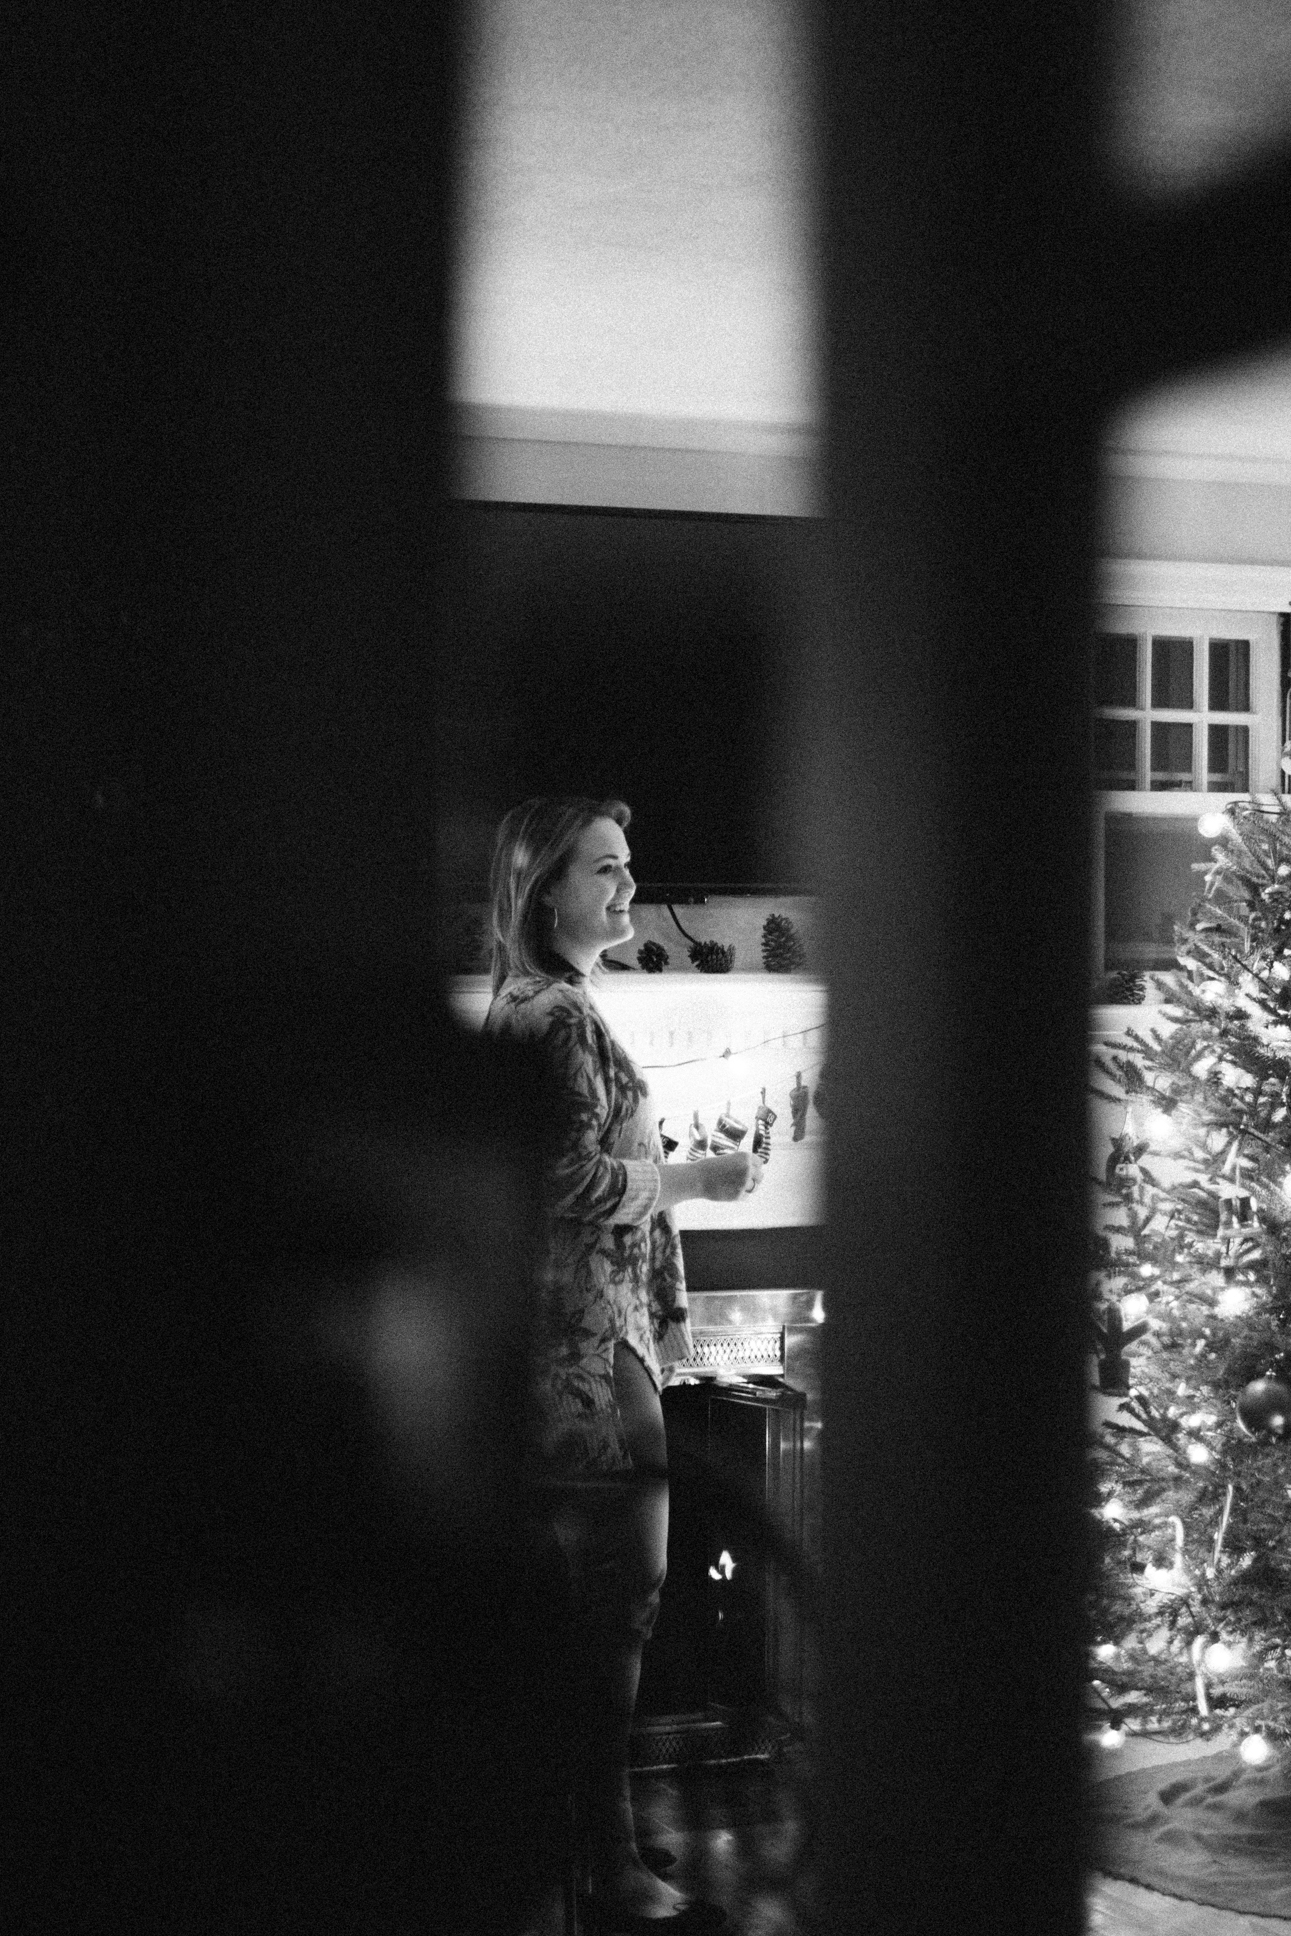 Surprised-woman-during-a-winter-engagement.jpg